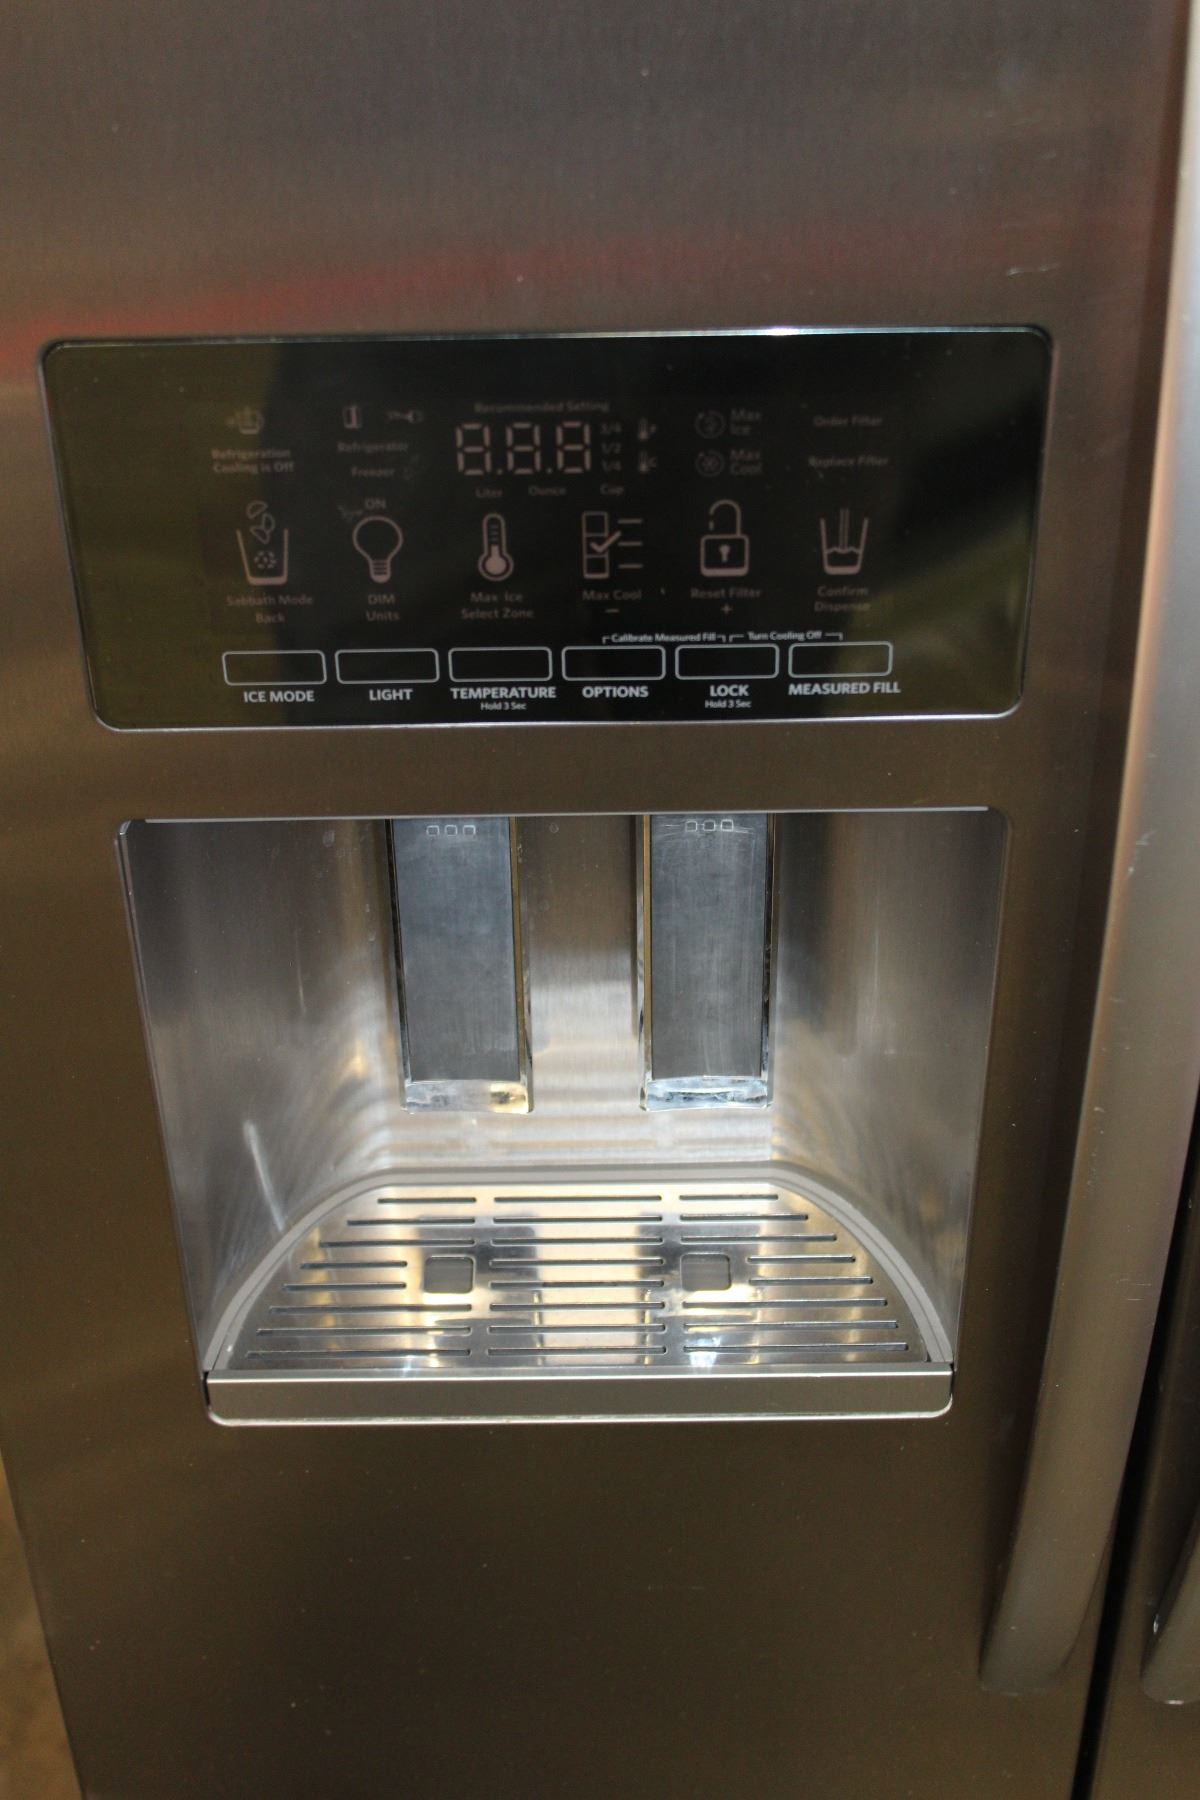 ... Image 4 : NEW KITCHEN AID STAINLESS FRENCH DOOR COUNTER DEPTH FRIDGE  WITH DIGITAL SCREEN WATER ...